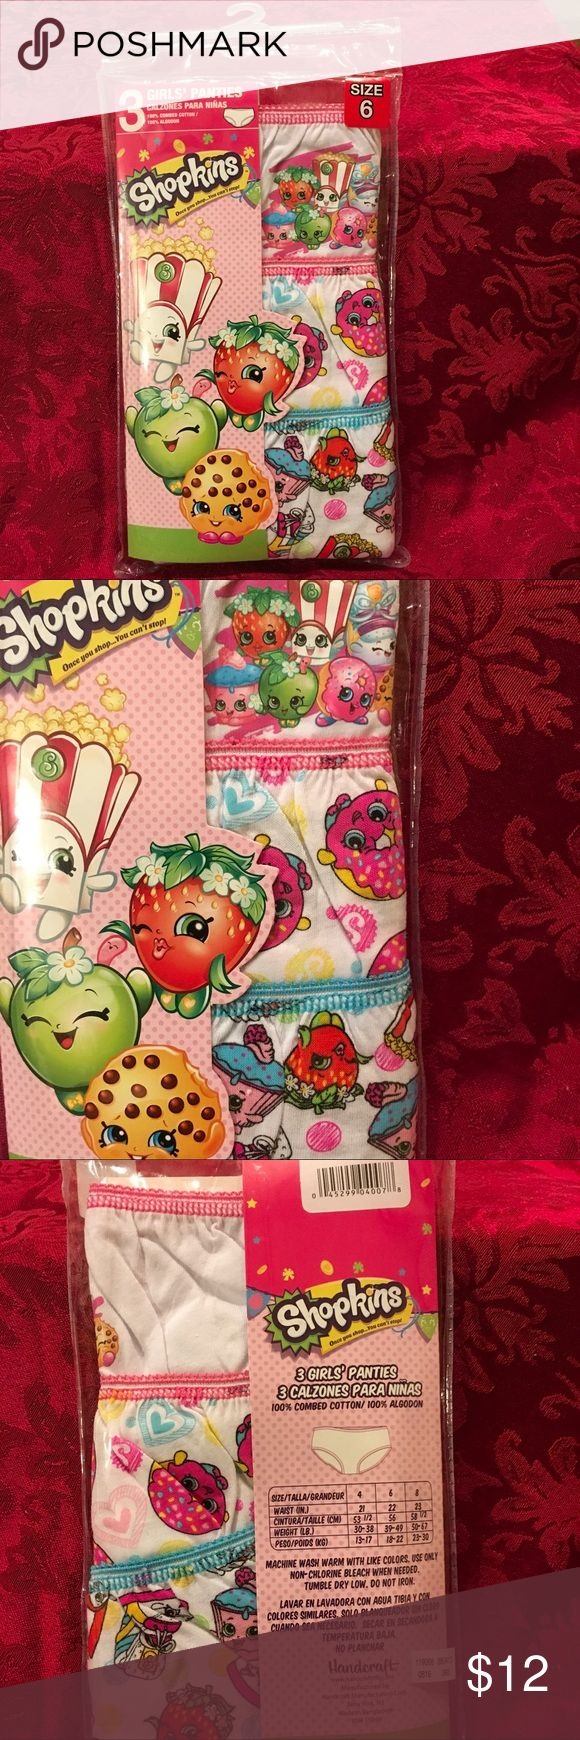 "NEW Shopkins Girls Sz 6 Panties 3 Pair Pack NEW Shopkins Girls Panties  3 Pair Pack  Assorted Designs  100% Cotton  Size 6 Panties  22"" Waist 39-49 Weight Smoke and Pet Free Home   IT#6500 shopkins  Other"